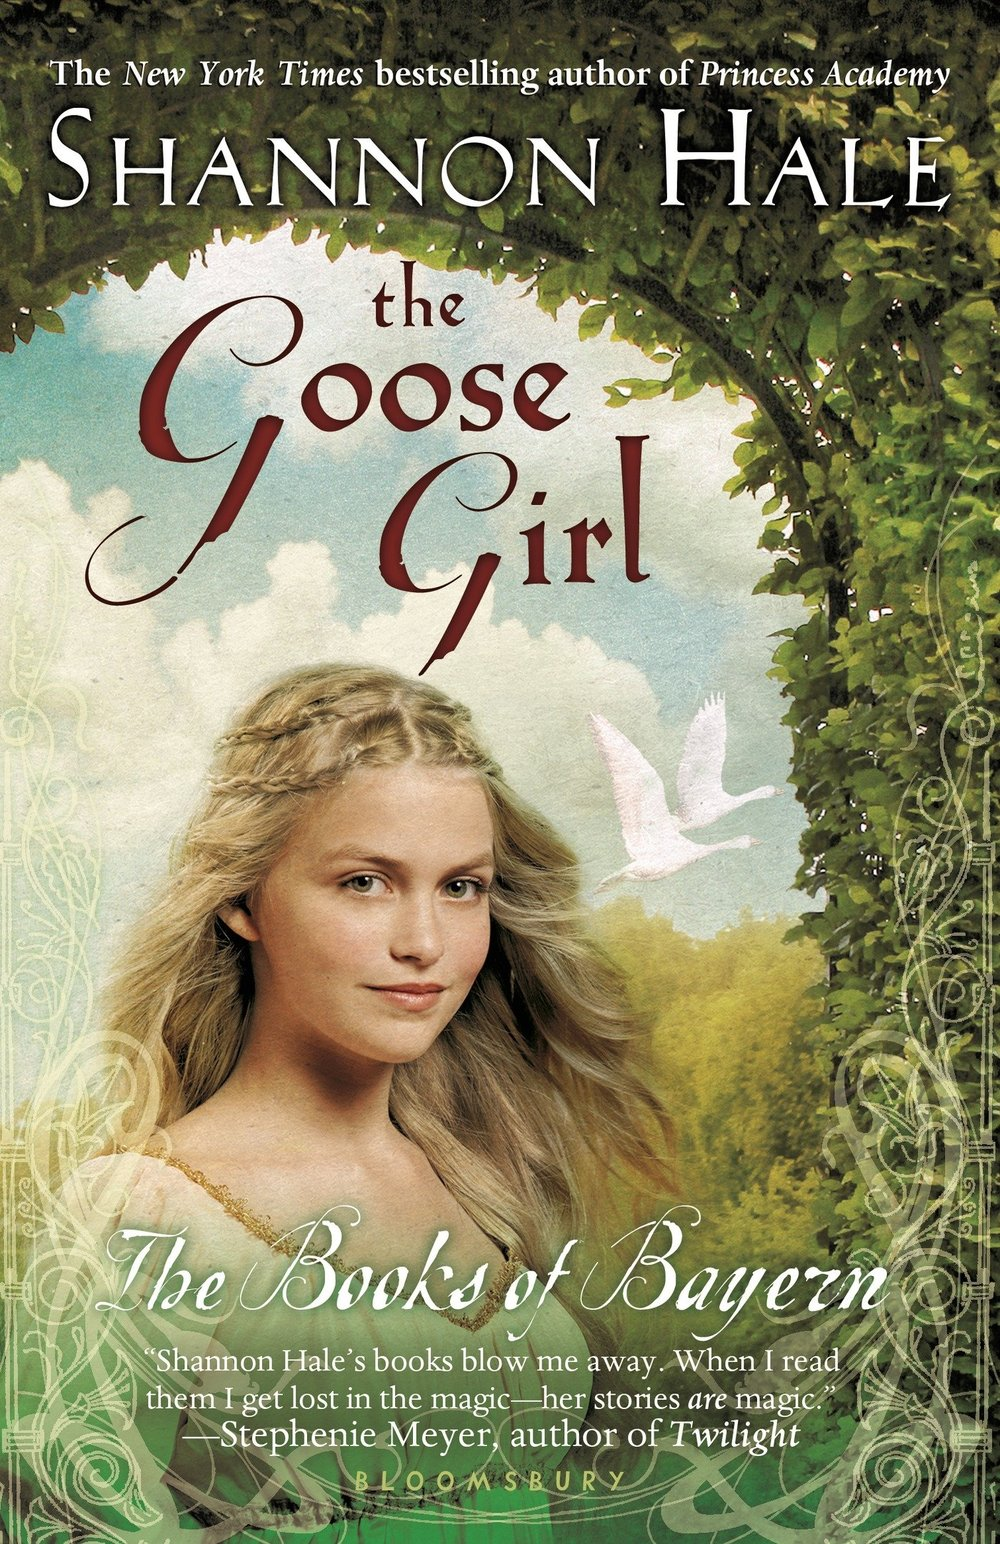 By Shannon Hale - Ani takes on work as a royal goose girl, hiding in plain sight while she develops her forbidden talents and works to discover her own true, powerful voice.*